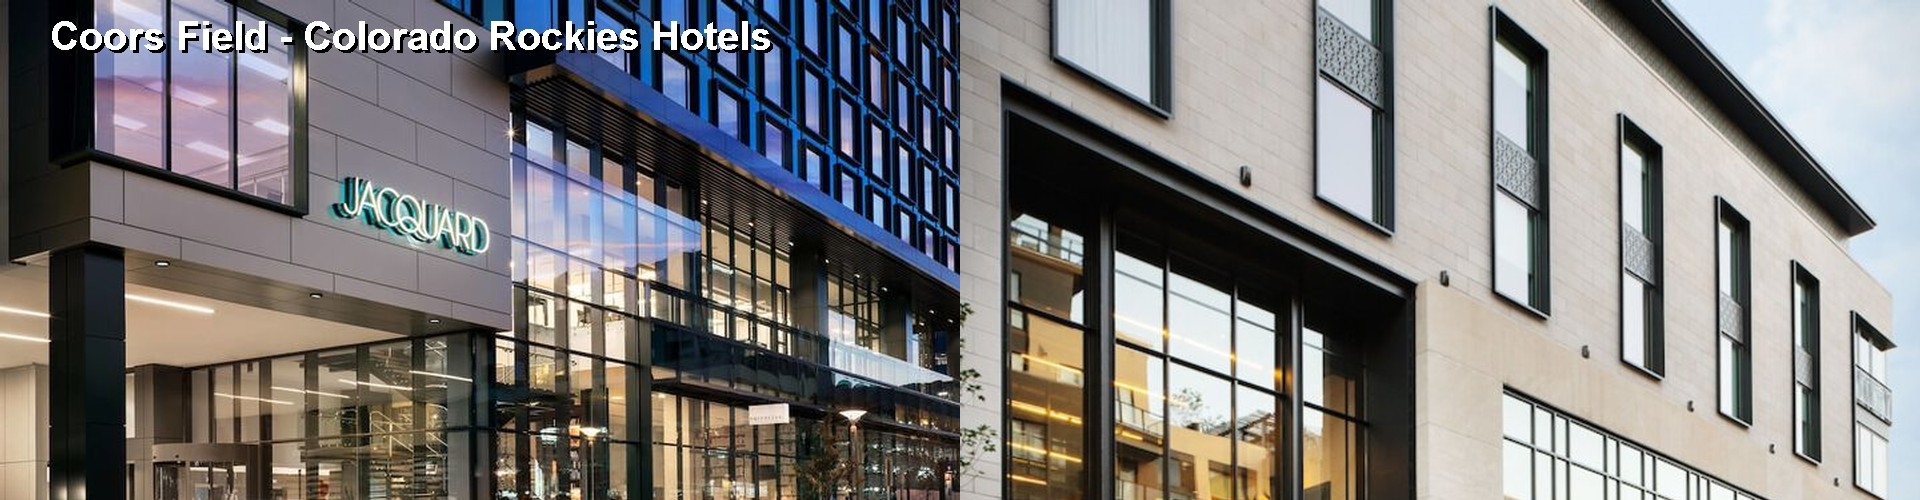 $52+ Hotels Near Coors Field Colorado Rockies in Denver CO